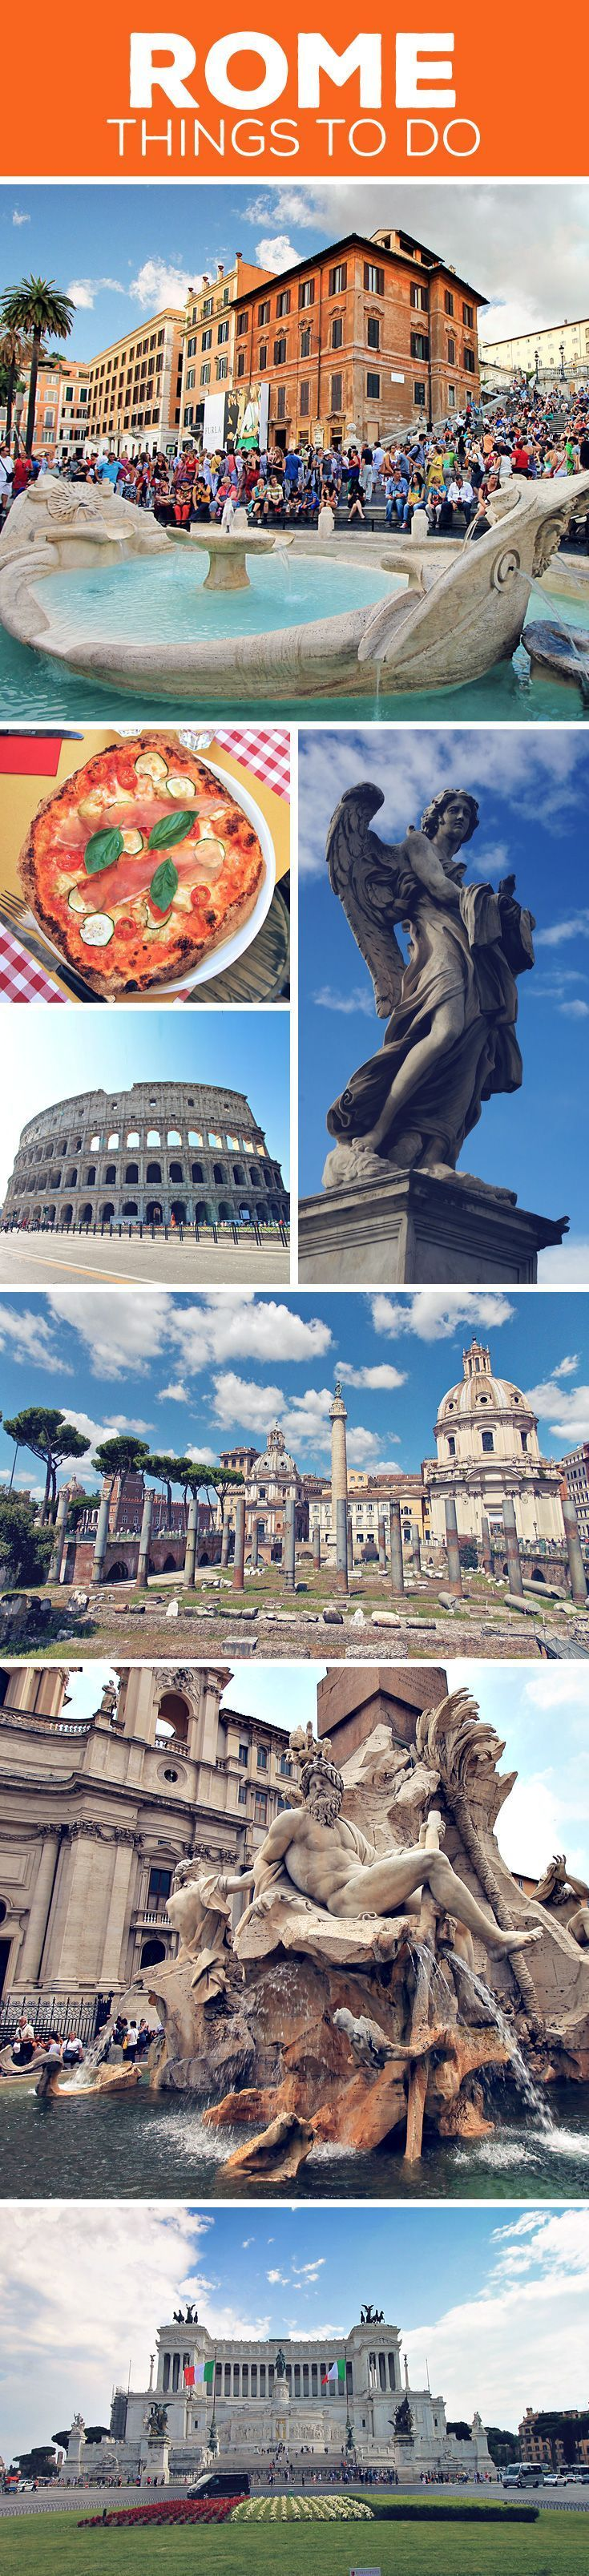 Sightseeing tips and things to do in Rome, Italy: Colosseum |  Pantheon | Roman Forum | Piazza Navona | Spanish Steps | Trevi Fountain | Altare della Patria | Vatican City | More on my blog: How To Travel Italy By Train - A First Timer's Guide incl. Things To Do And Places To Stay (just click on the image) via /Just1WayTicket/ | Interrail Eurail Europe Train Travel